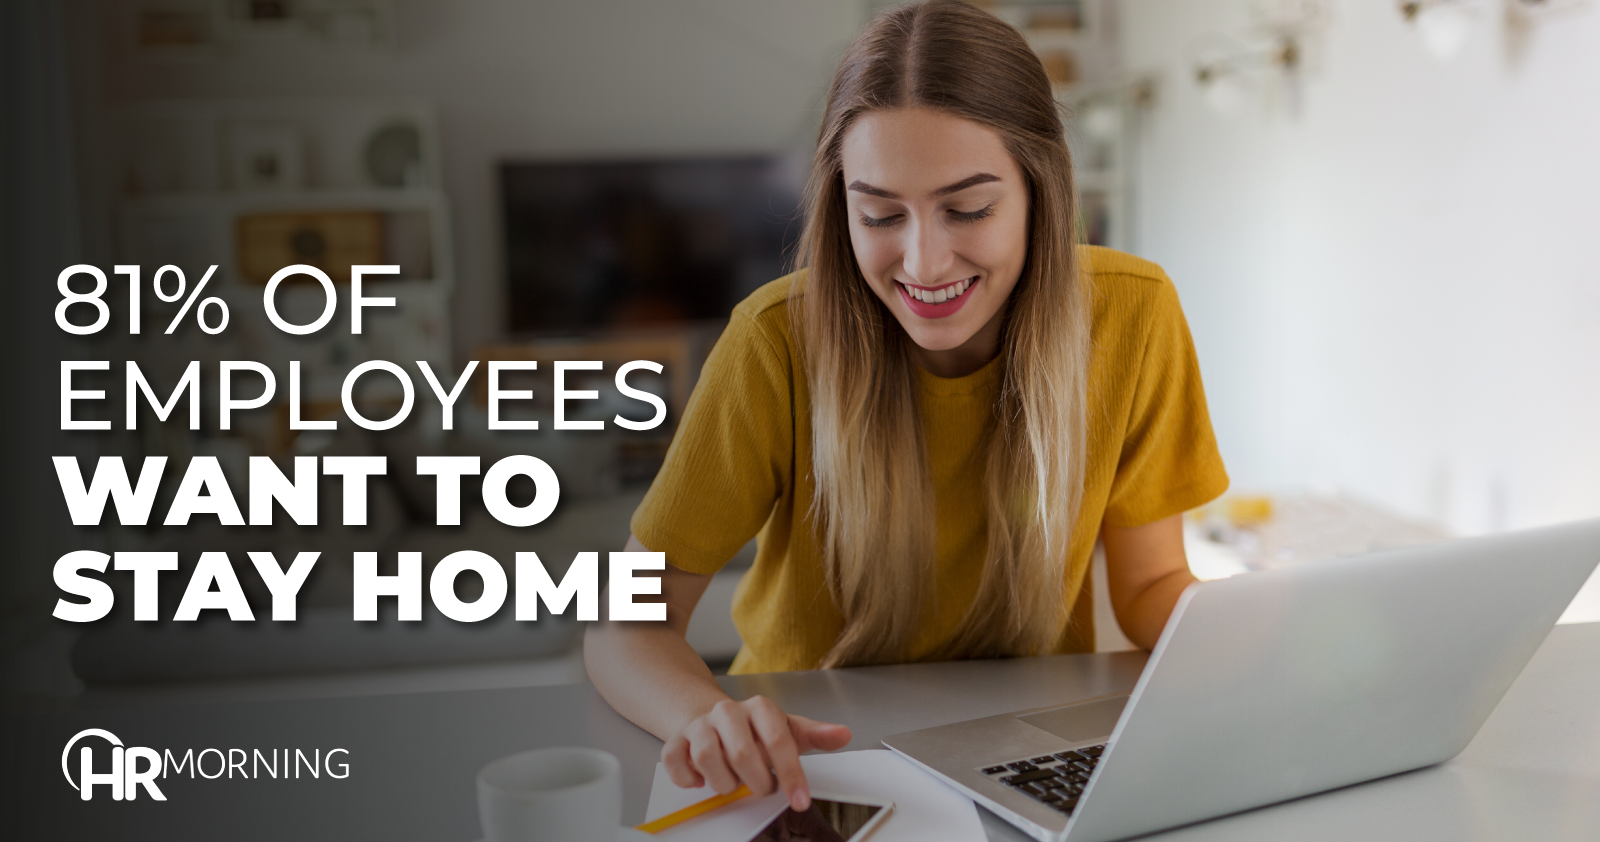 81% Of Employees Want To Stay Home